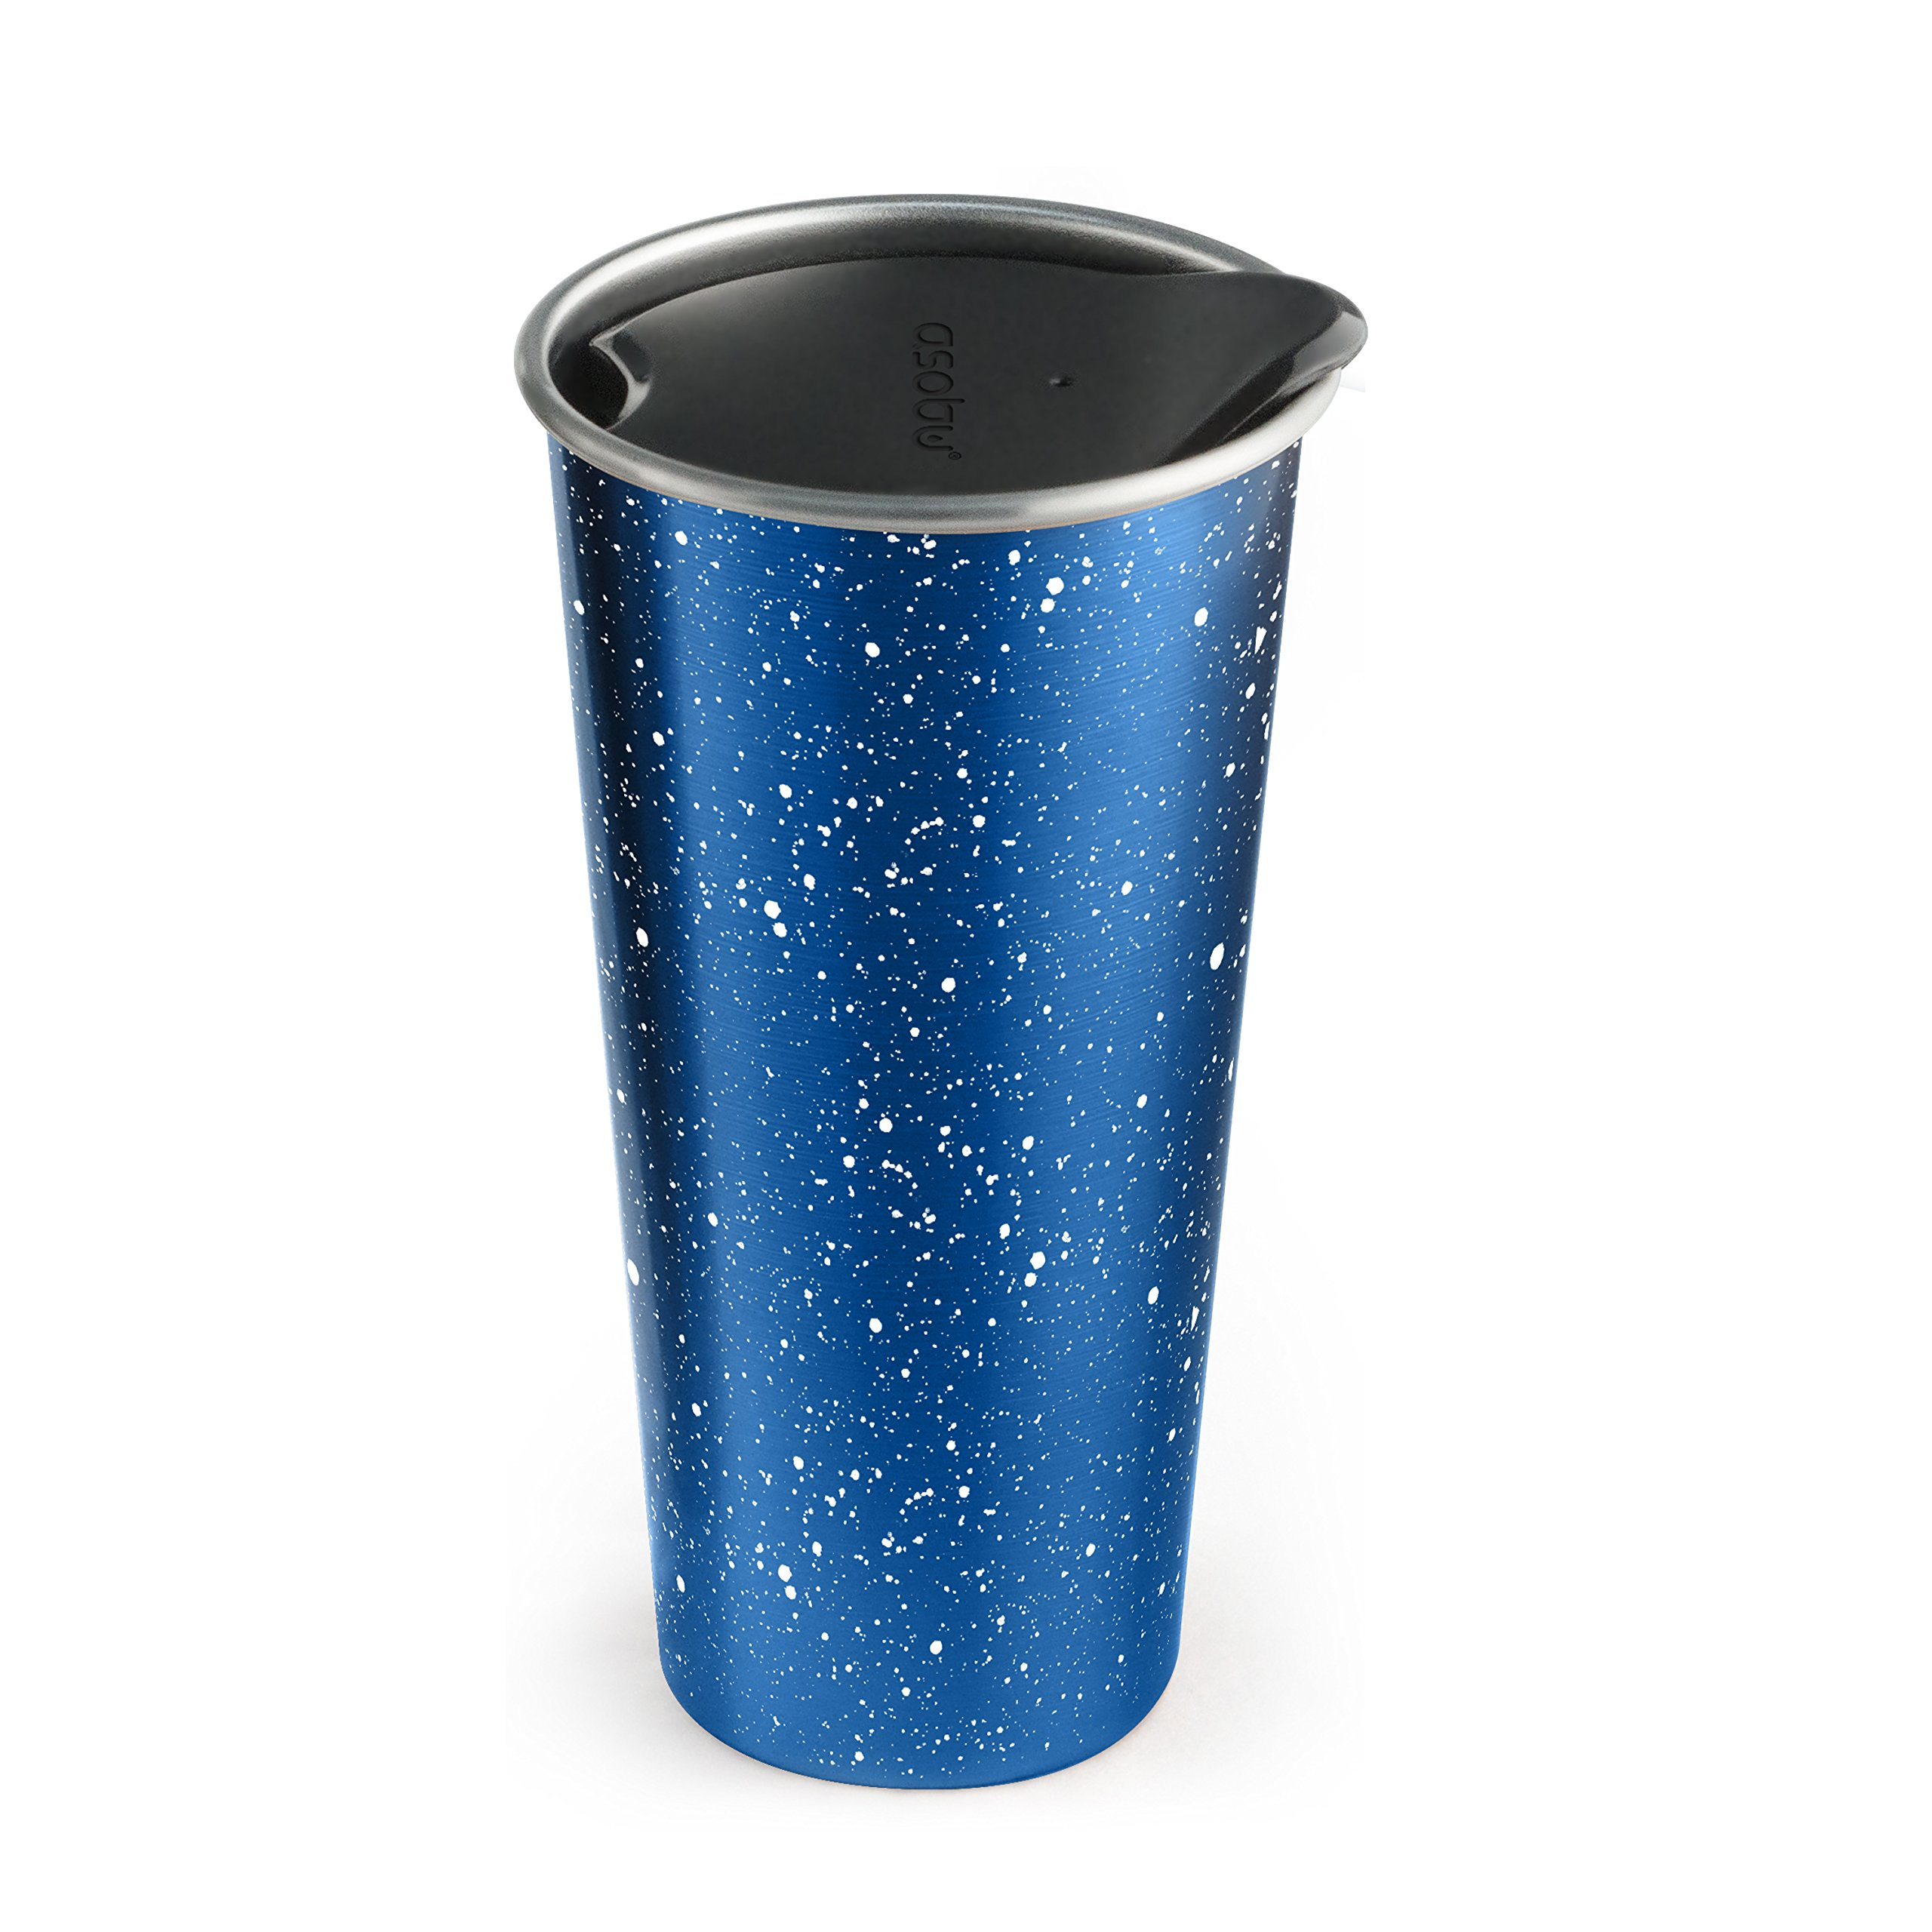 The Asobu Café Latte Stainless Steel Coffee Take to Go Tumbler 16 ounce (Speckled Blue)